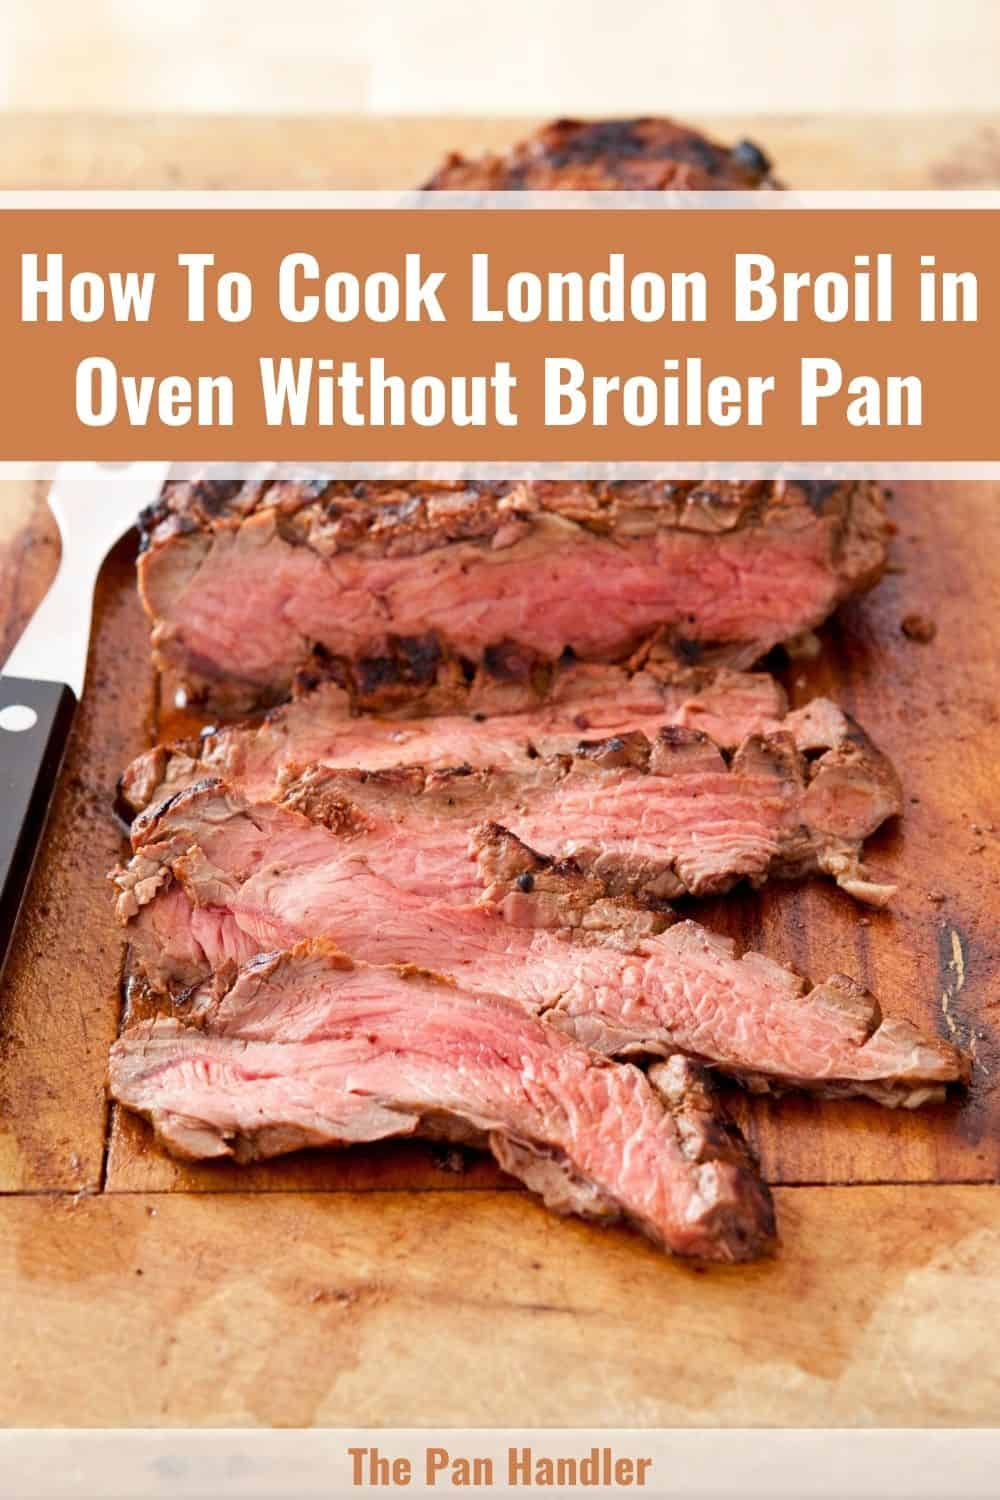 what can i use instead of a broiler pan